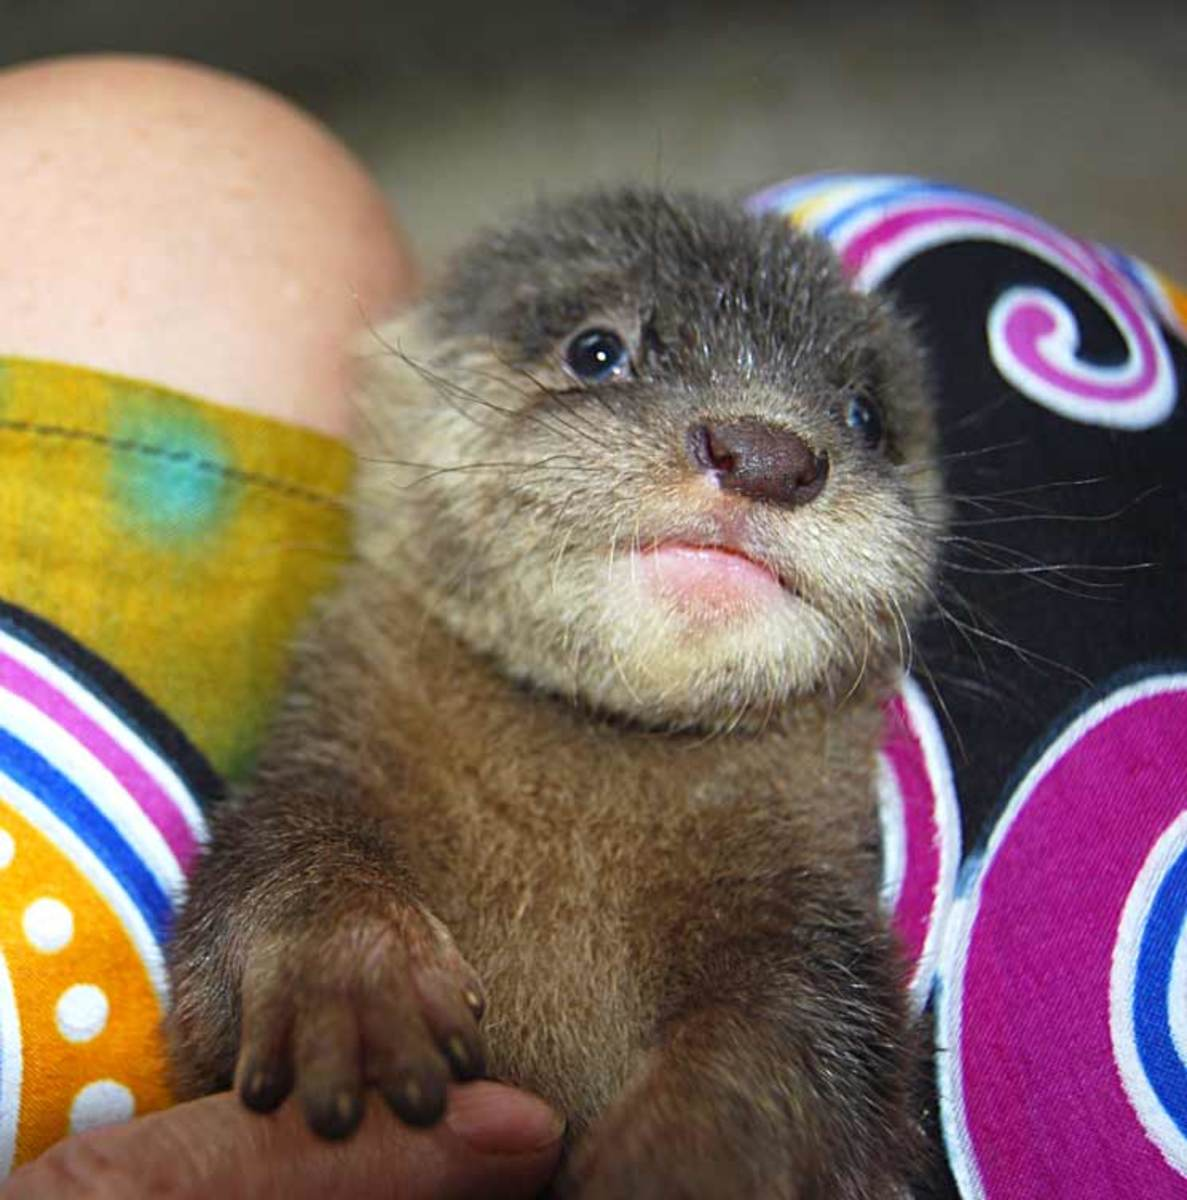 Nothing cuter than a baby otter. Nothing stinkier either! You have to toilet them like a kitter or dog puppy, as they don't eliminate on their own.